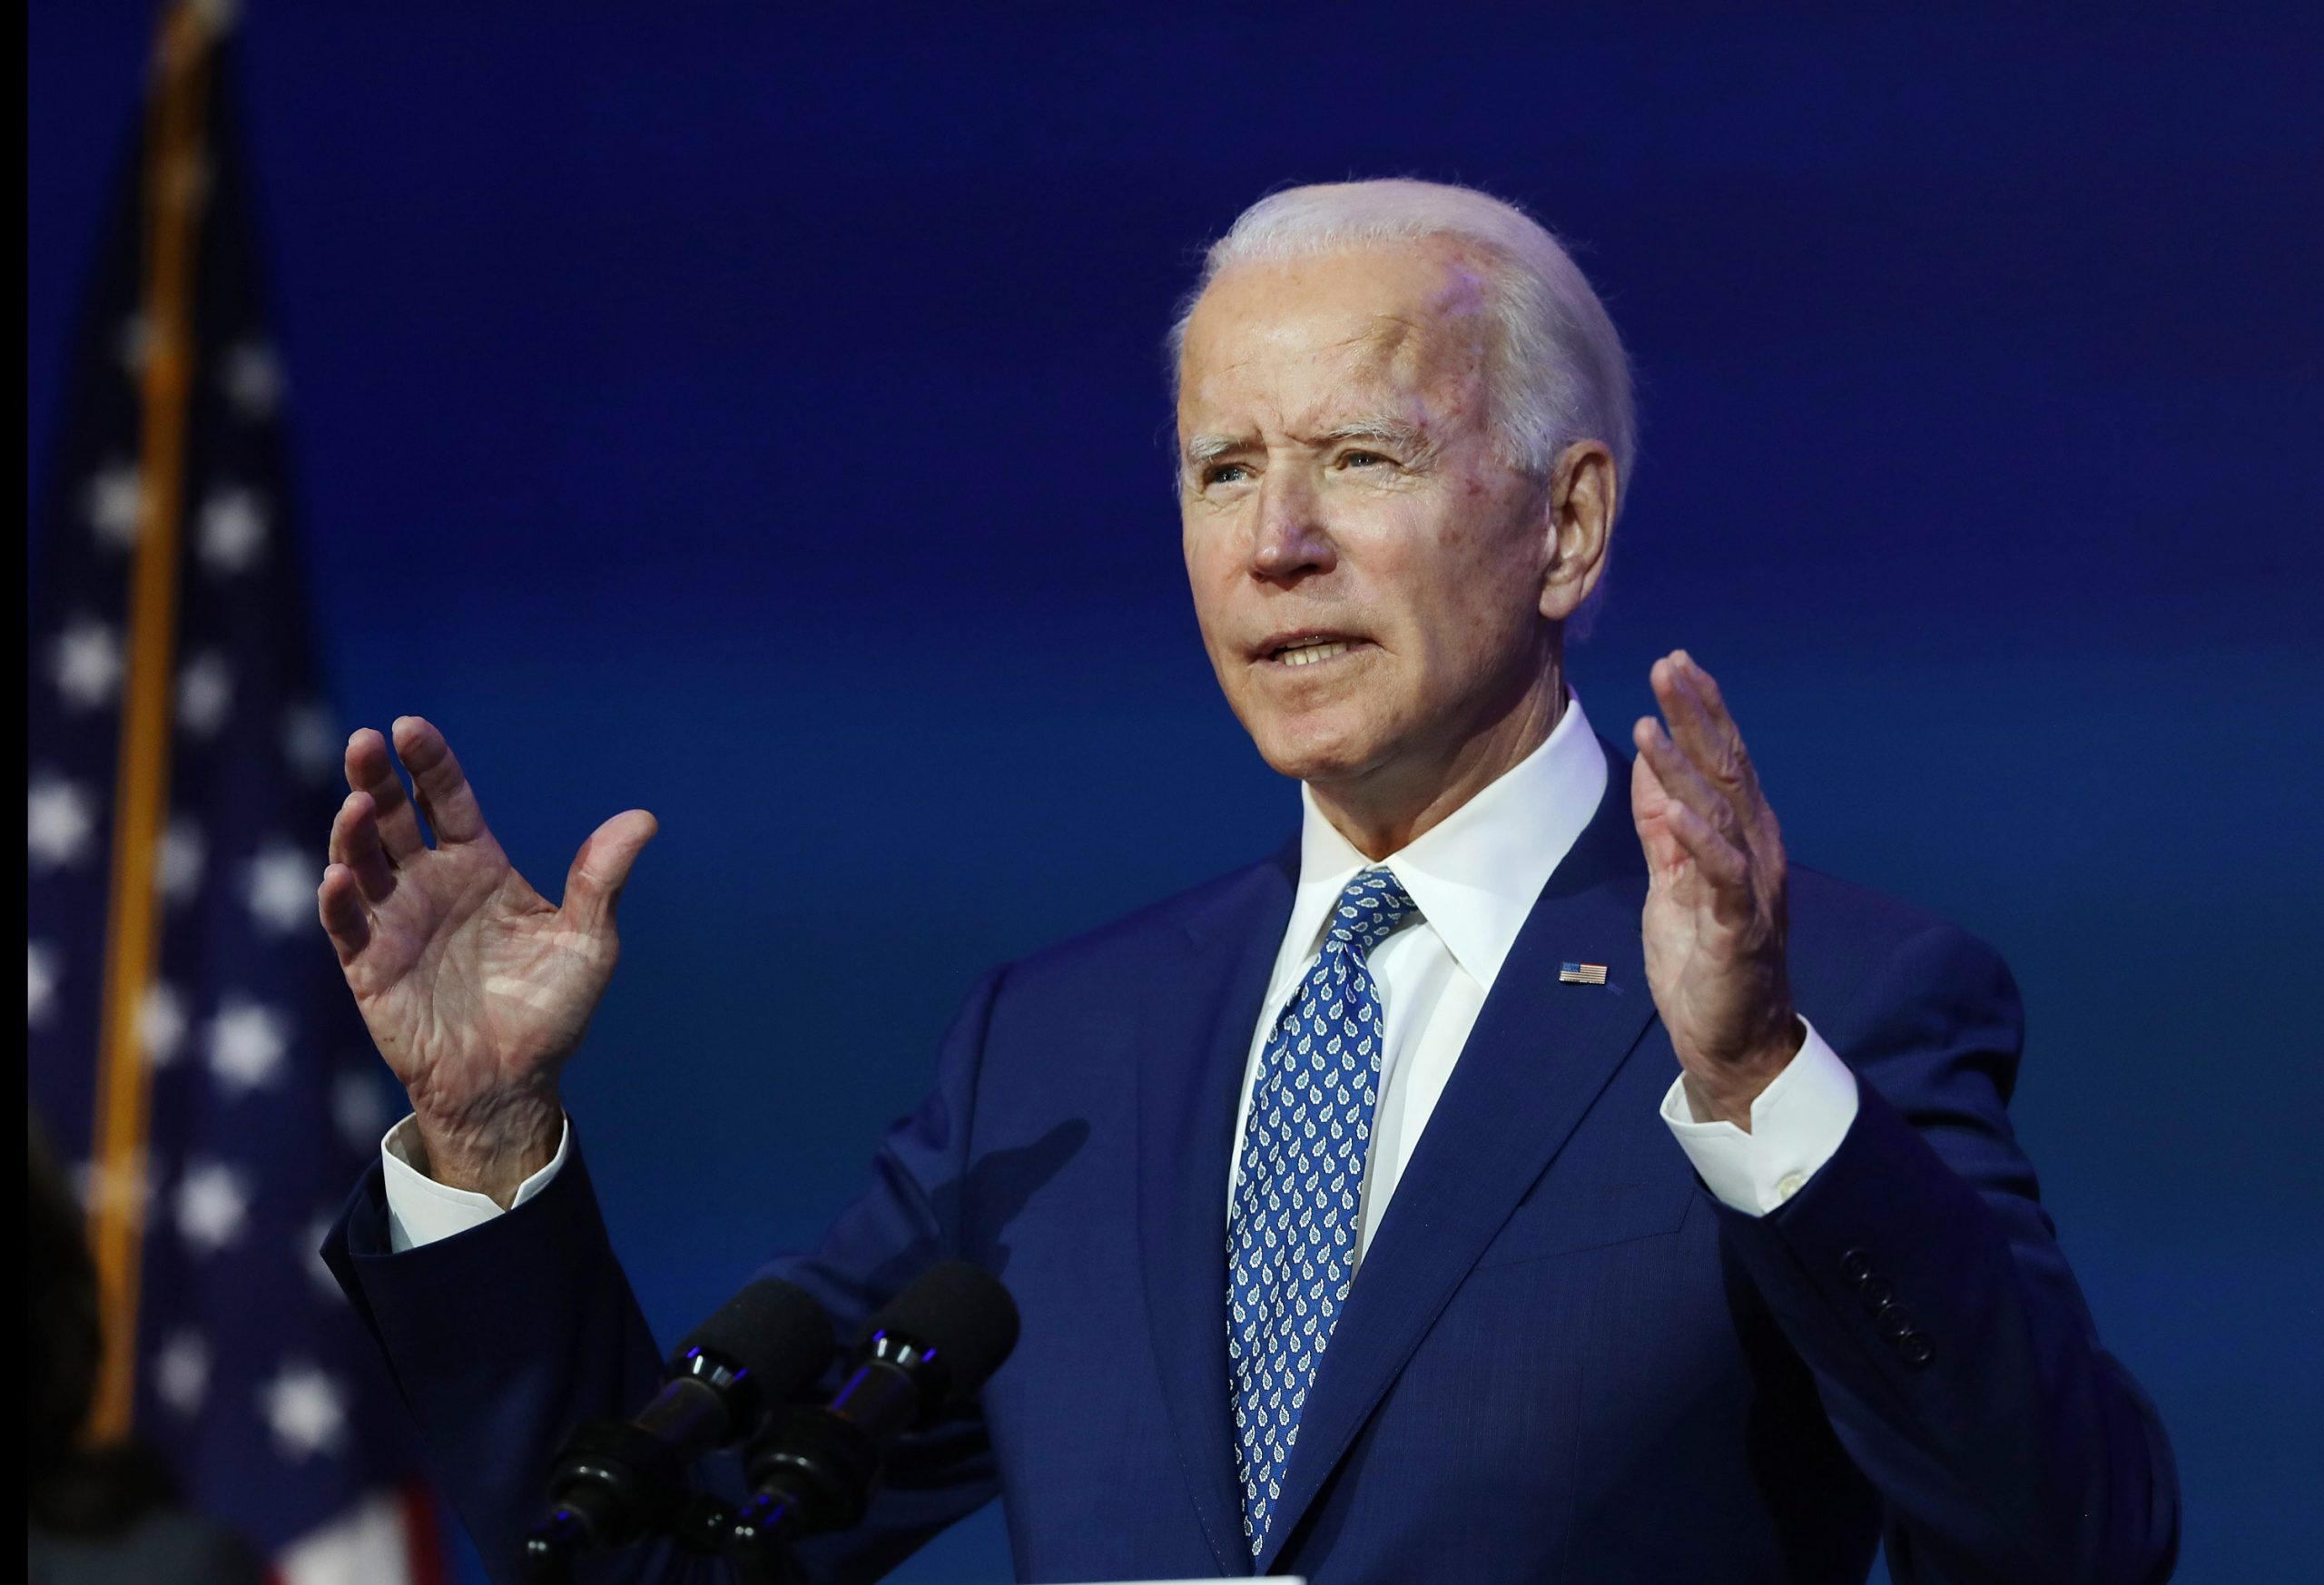 Biden puts health care front and center with a call to expand Obamacare